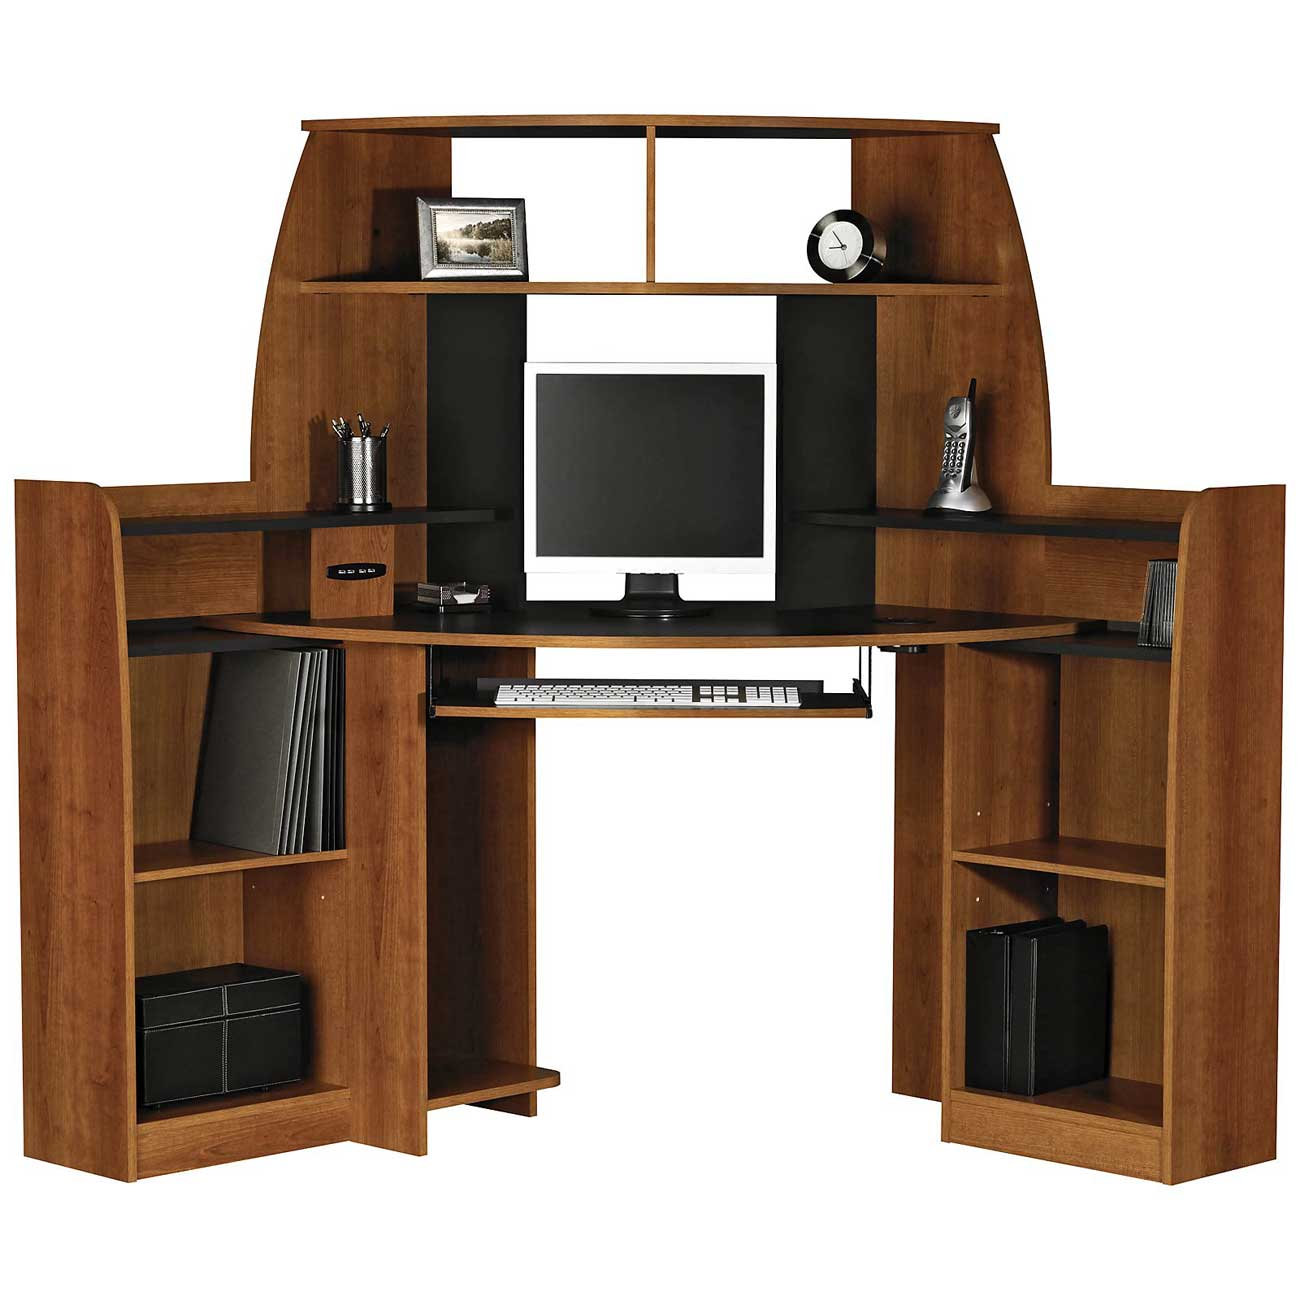 Wooden Computer Desk ~ Corner computer desk design and ideas